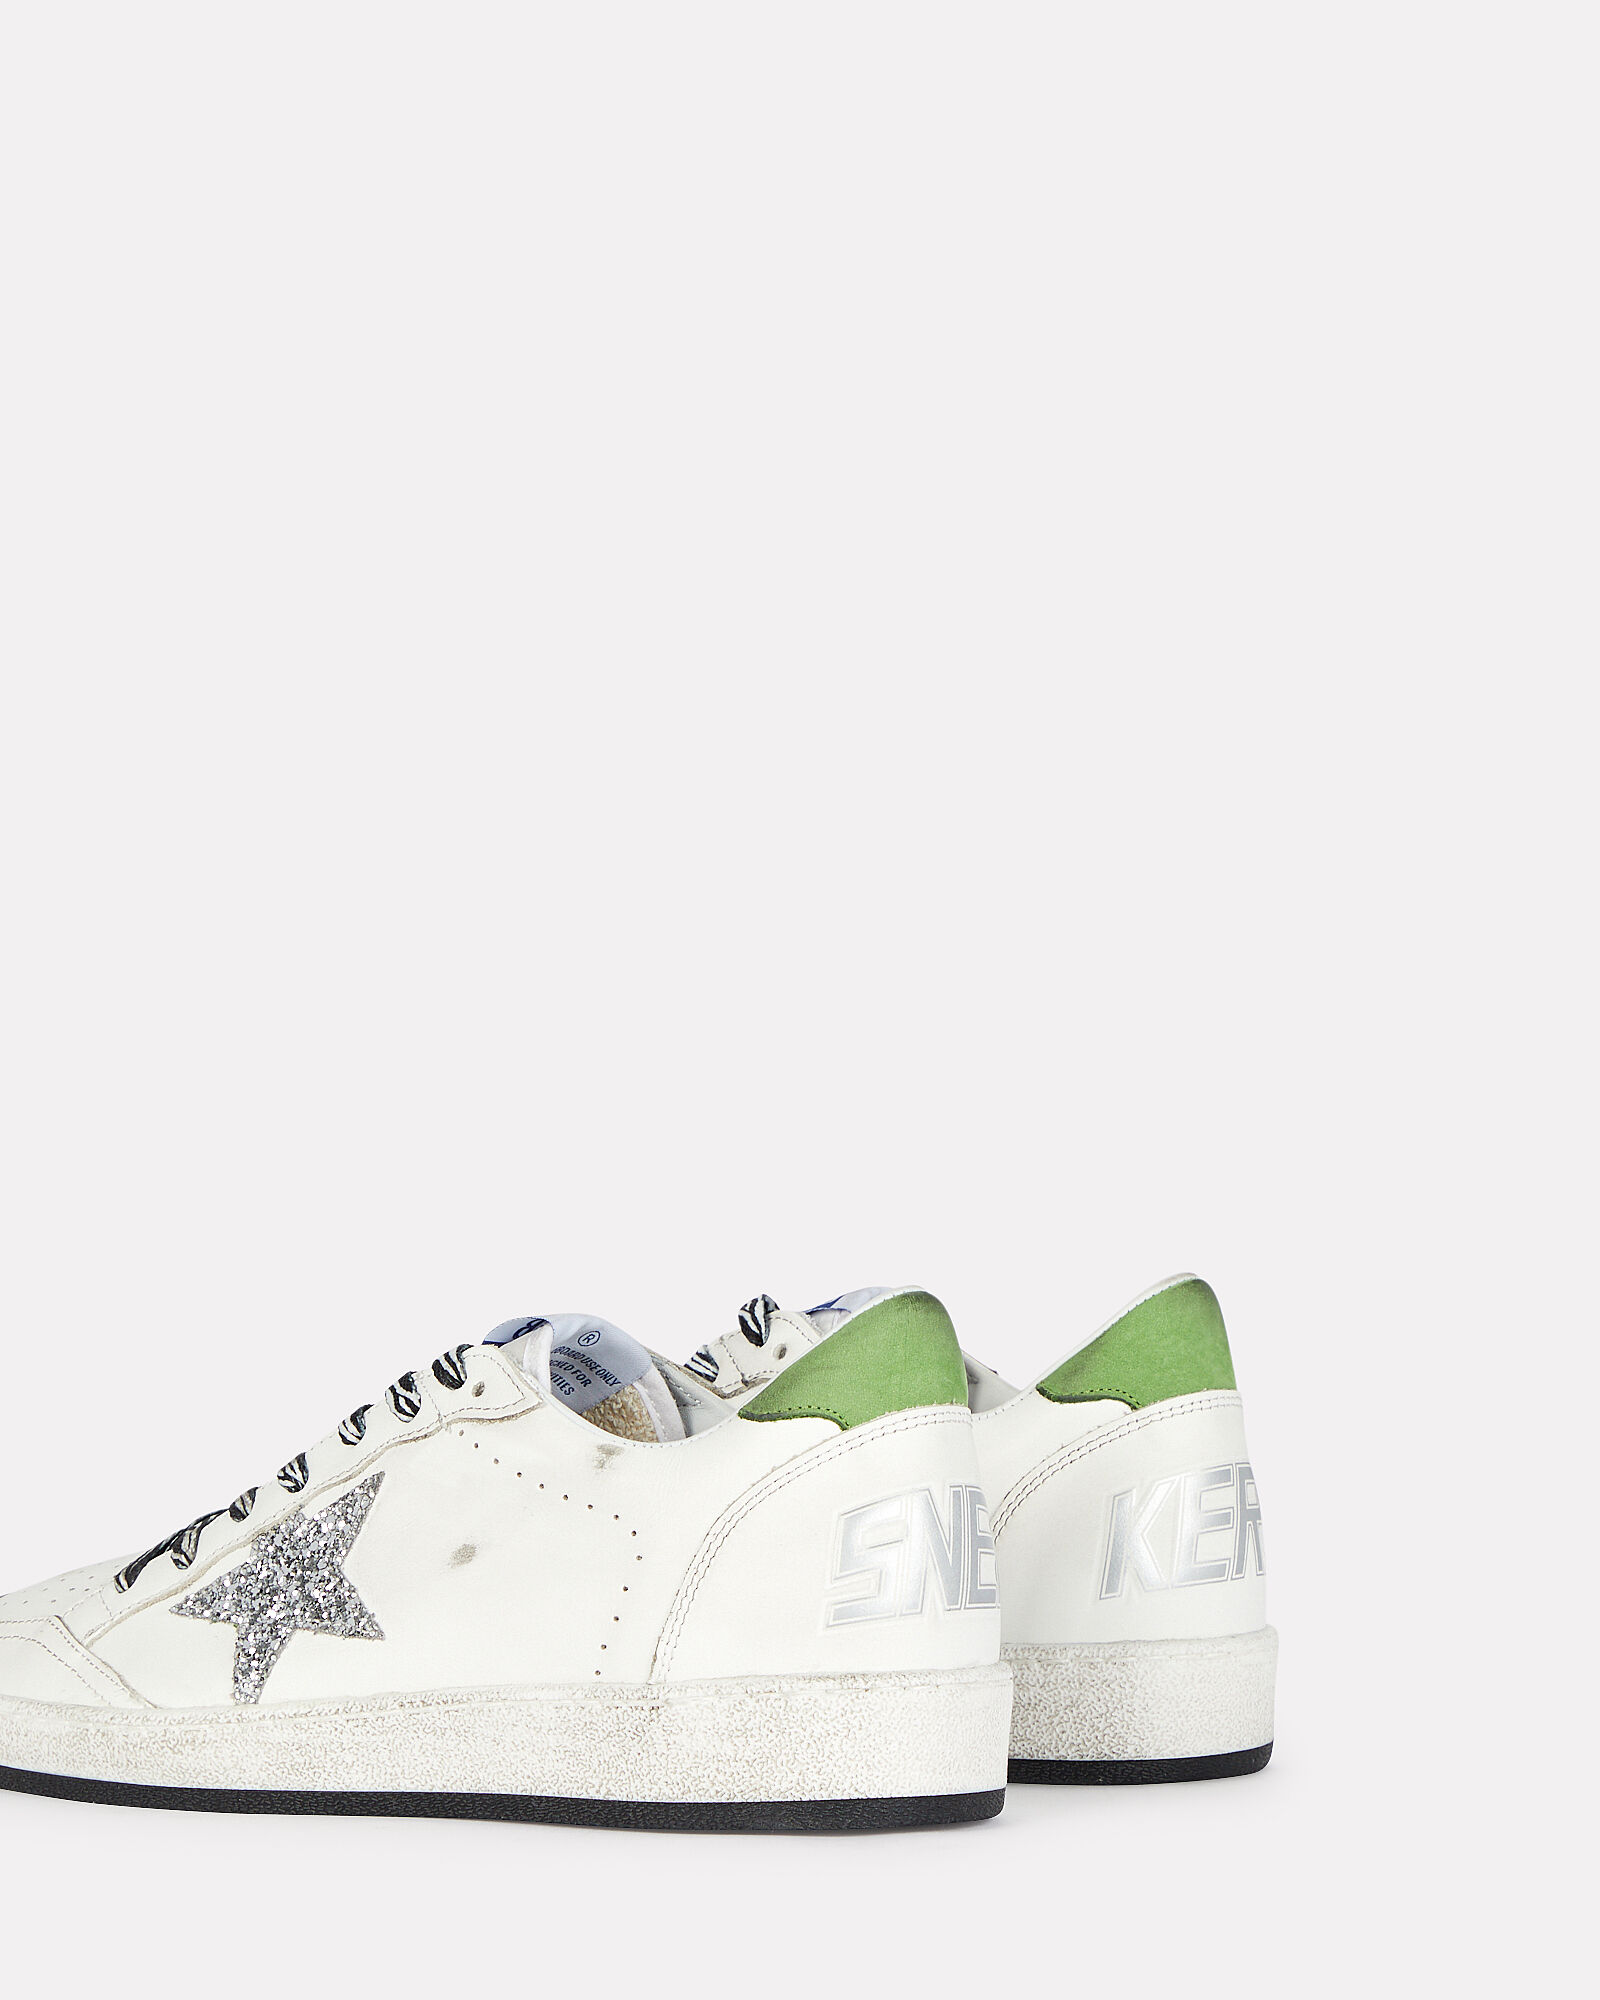 Ball Star Leather Sneakers, , hi-res